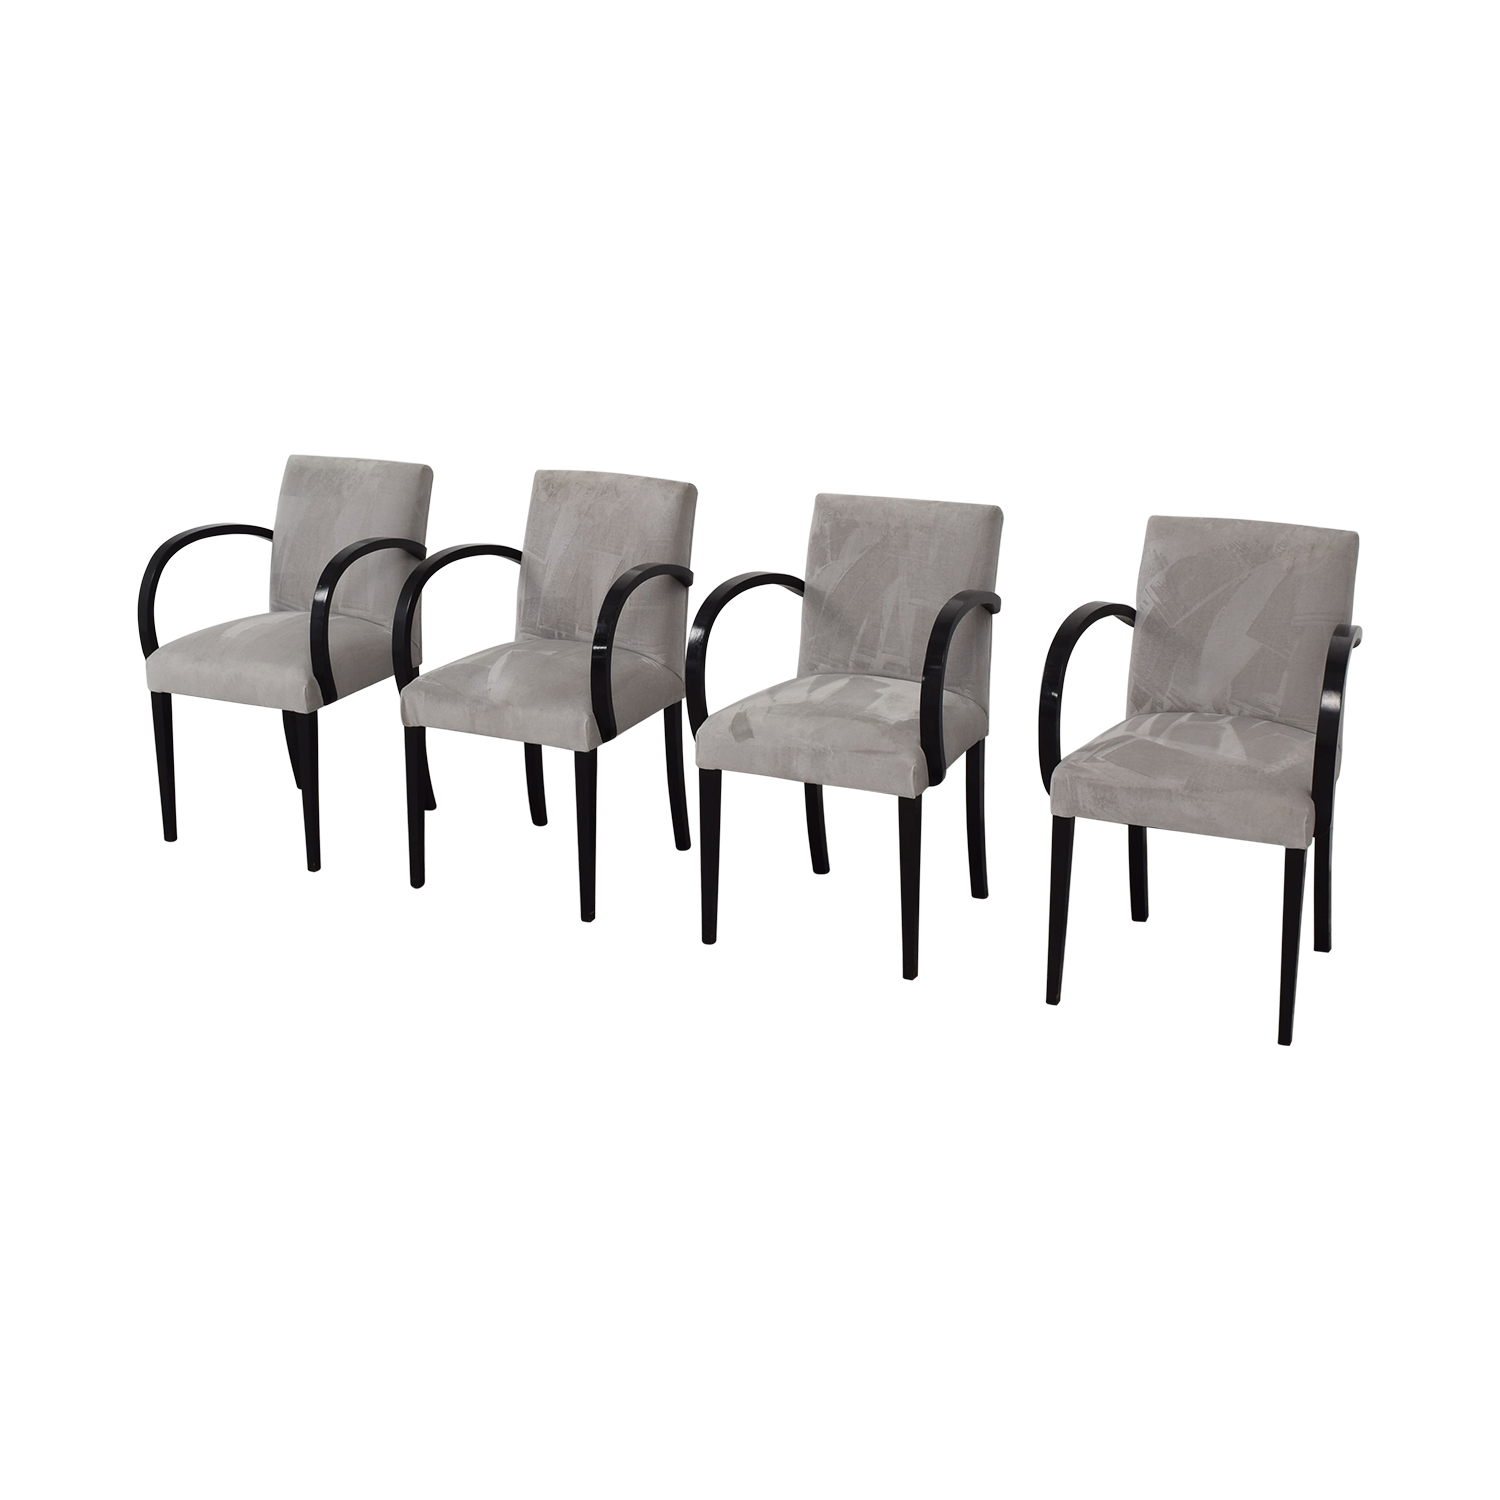 French Art Deco Chairs used